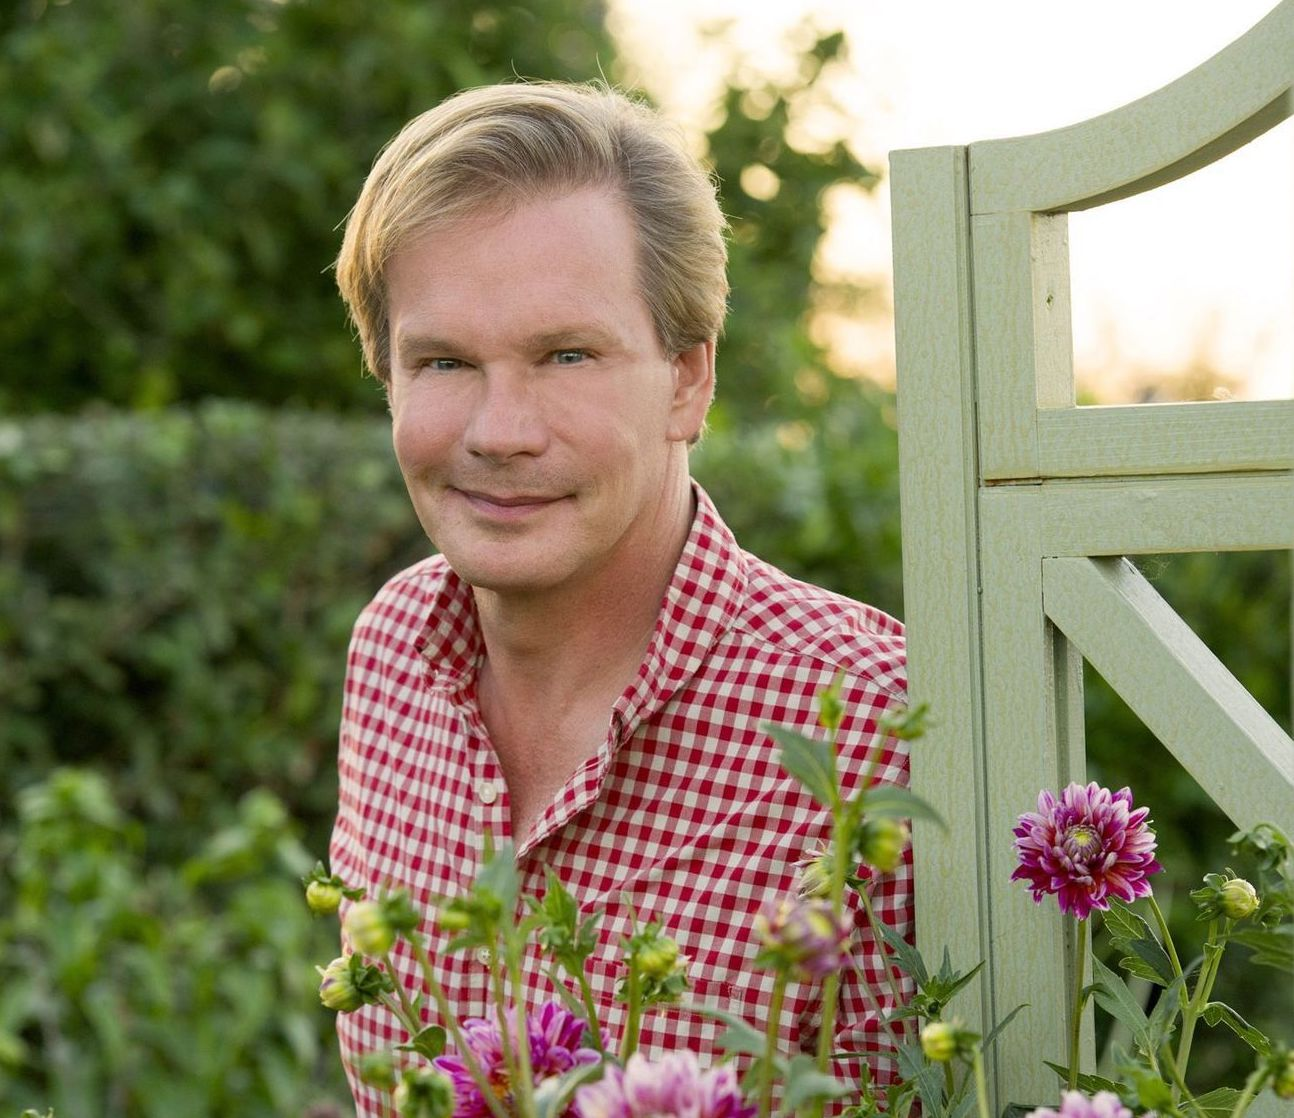 P. Allen Smith smiles behind a trellis and some purple flowers